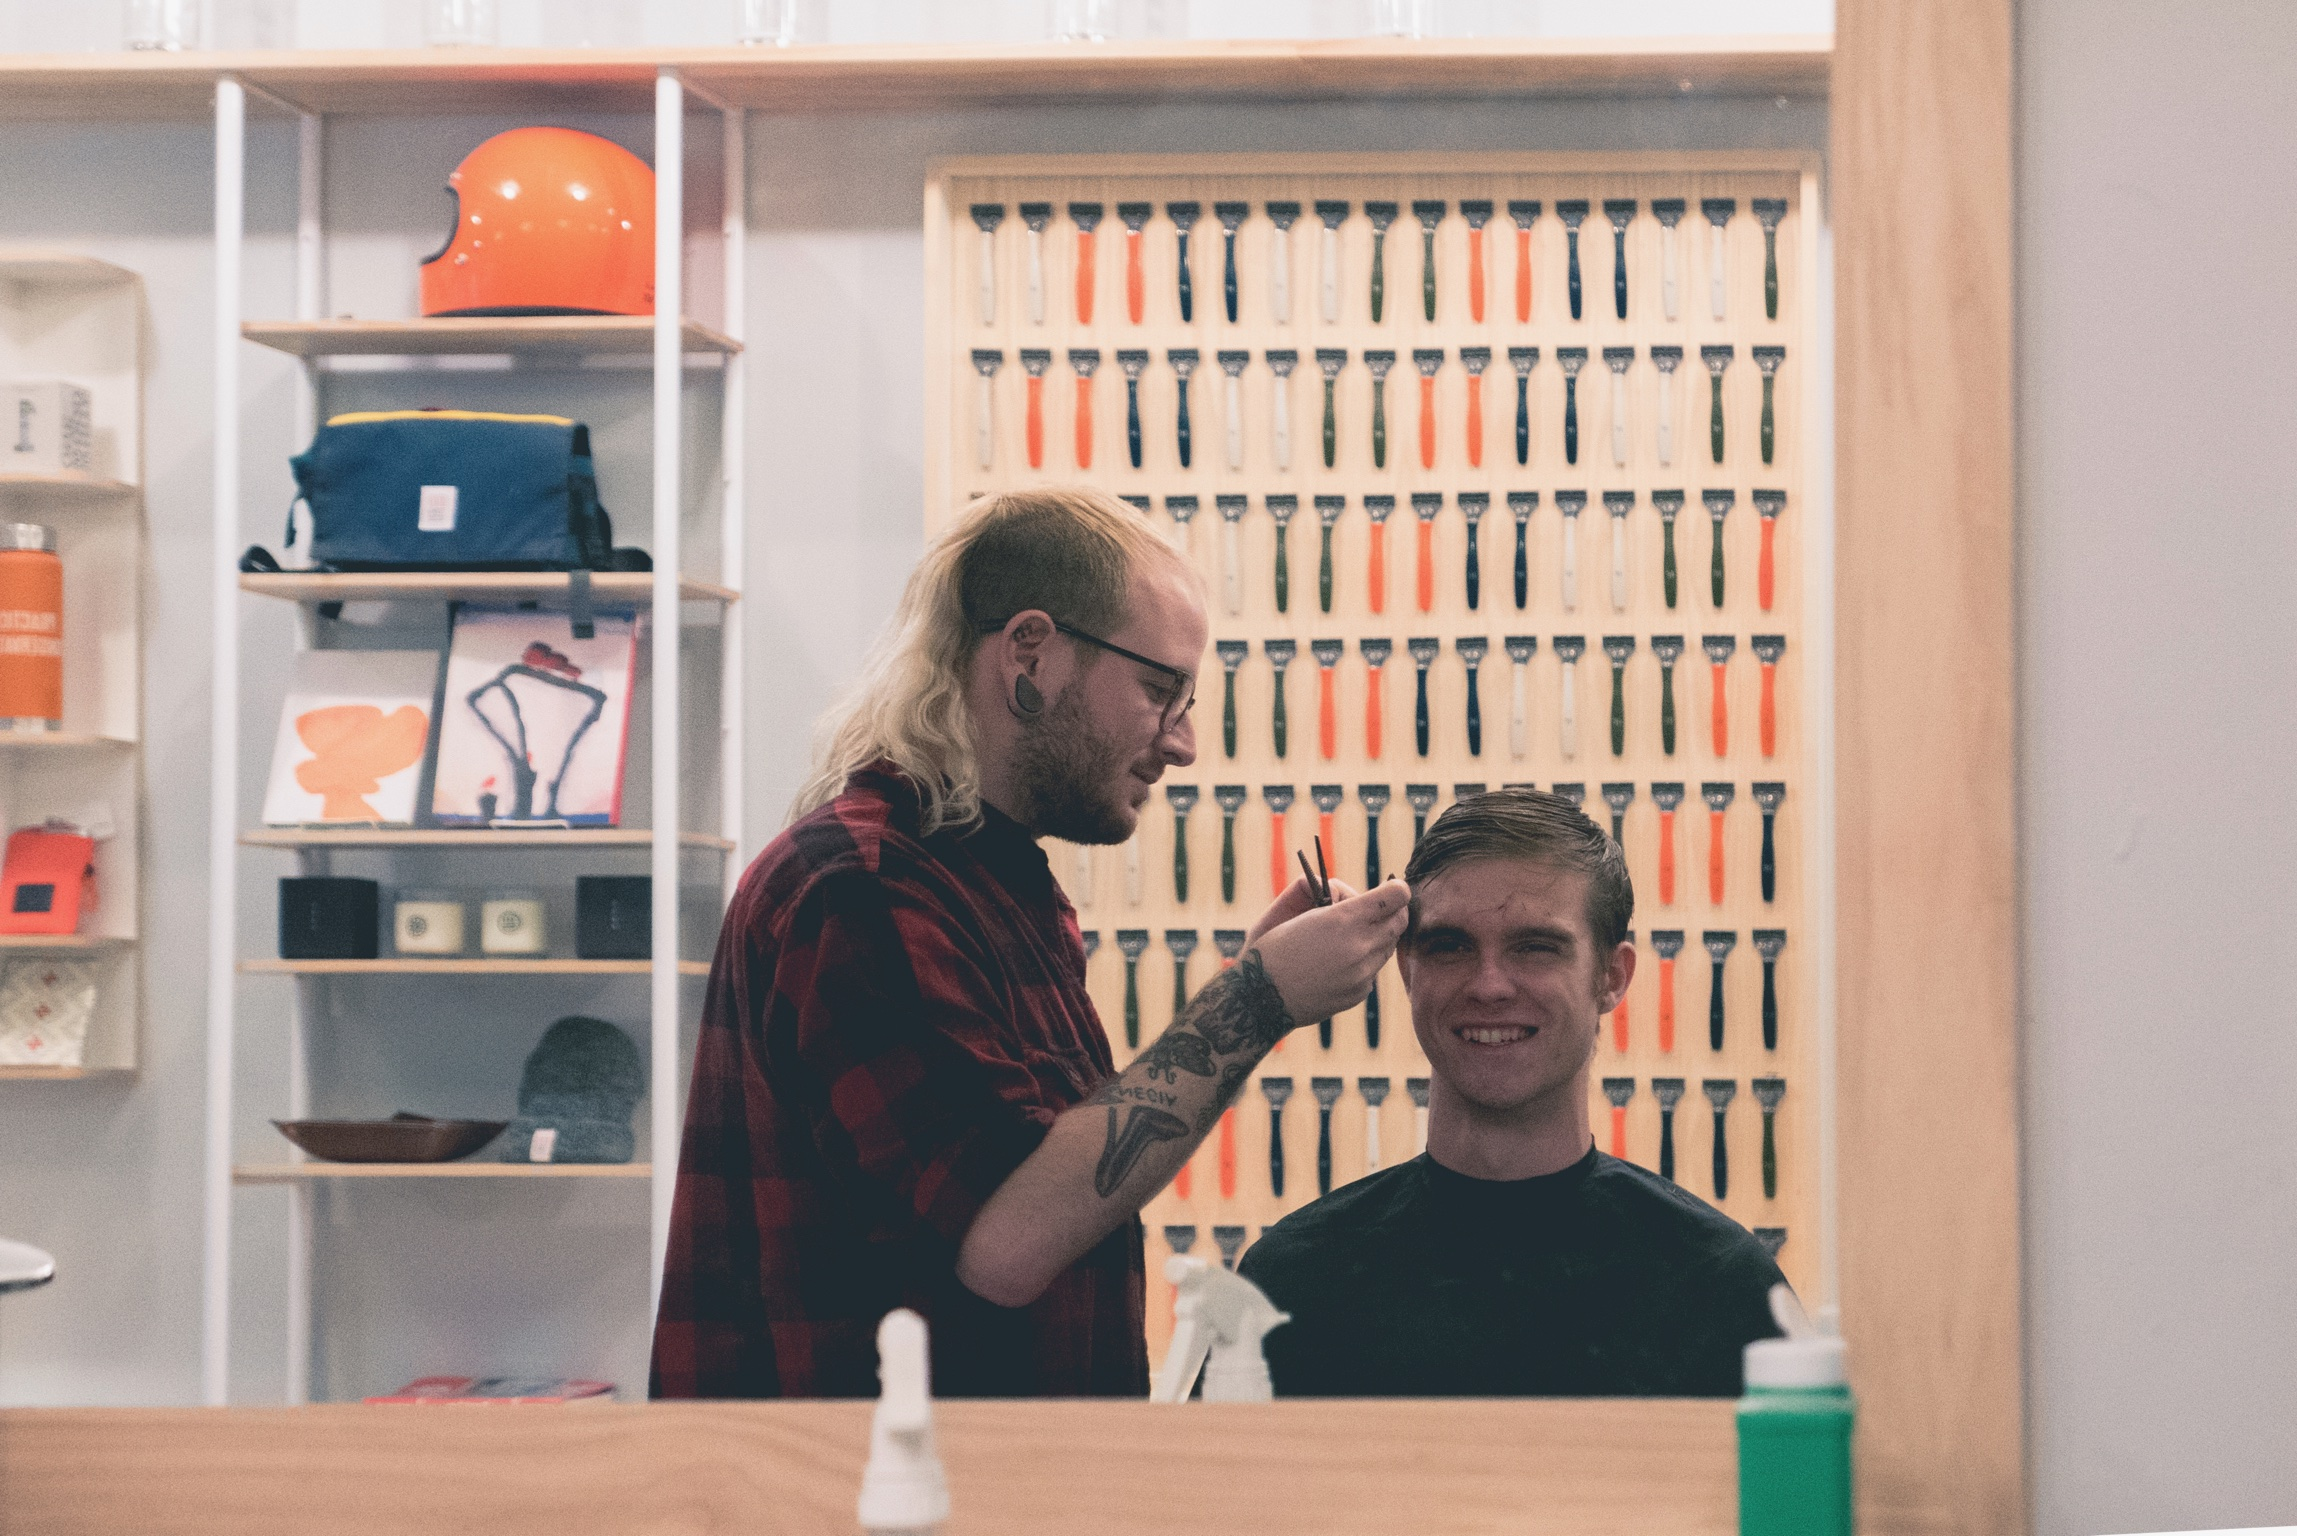 That might be me getting a haircut, photo by  Vince